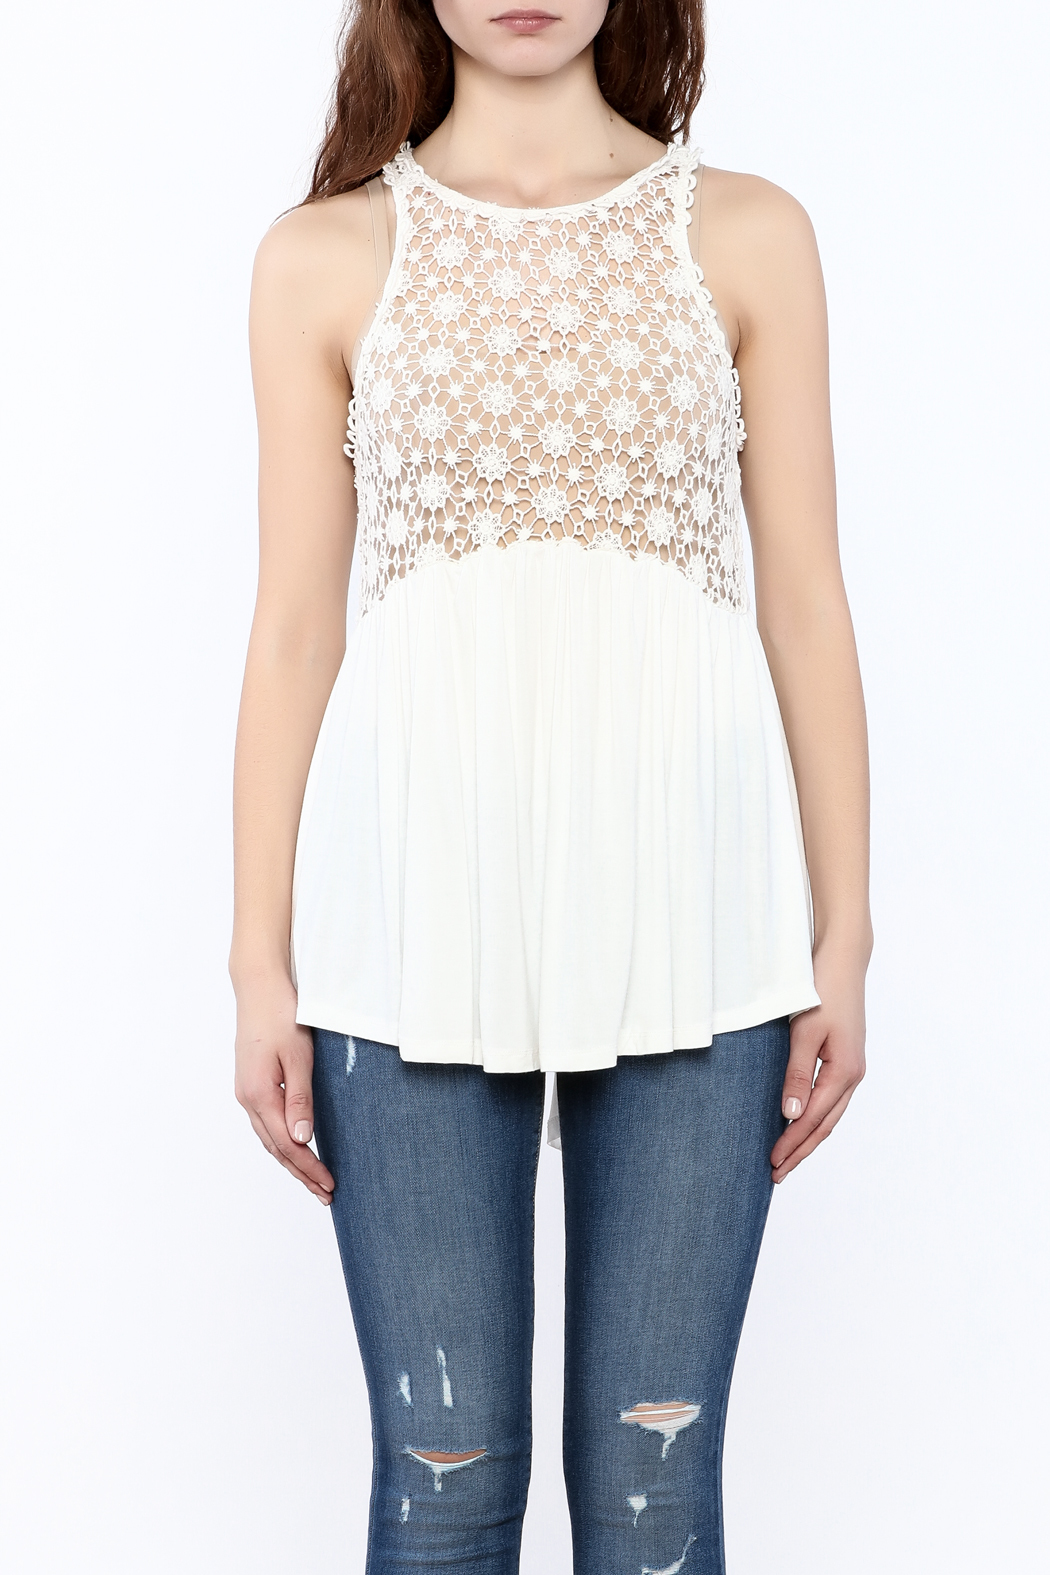 POL Crochet Tank Top from New York City by Dor L'Dor — Shoptiques